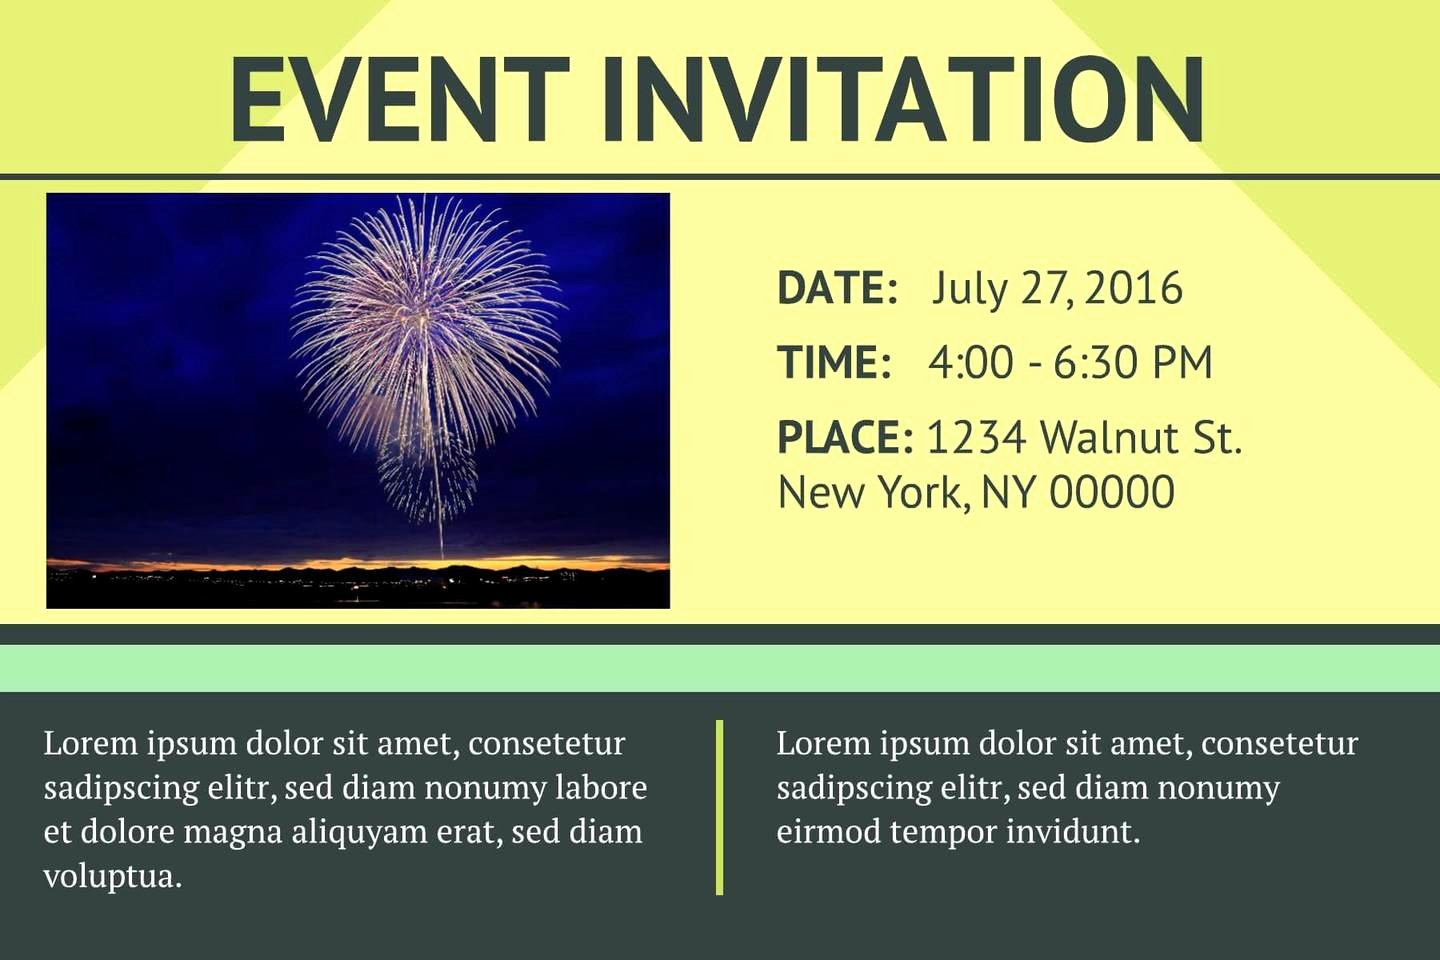 Event Invitation Email Template New 3 Free event Invitation Templates & Examples Lucidpress